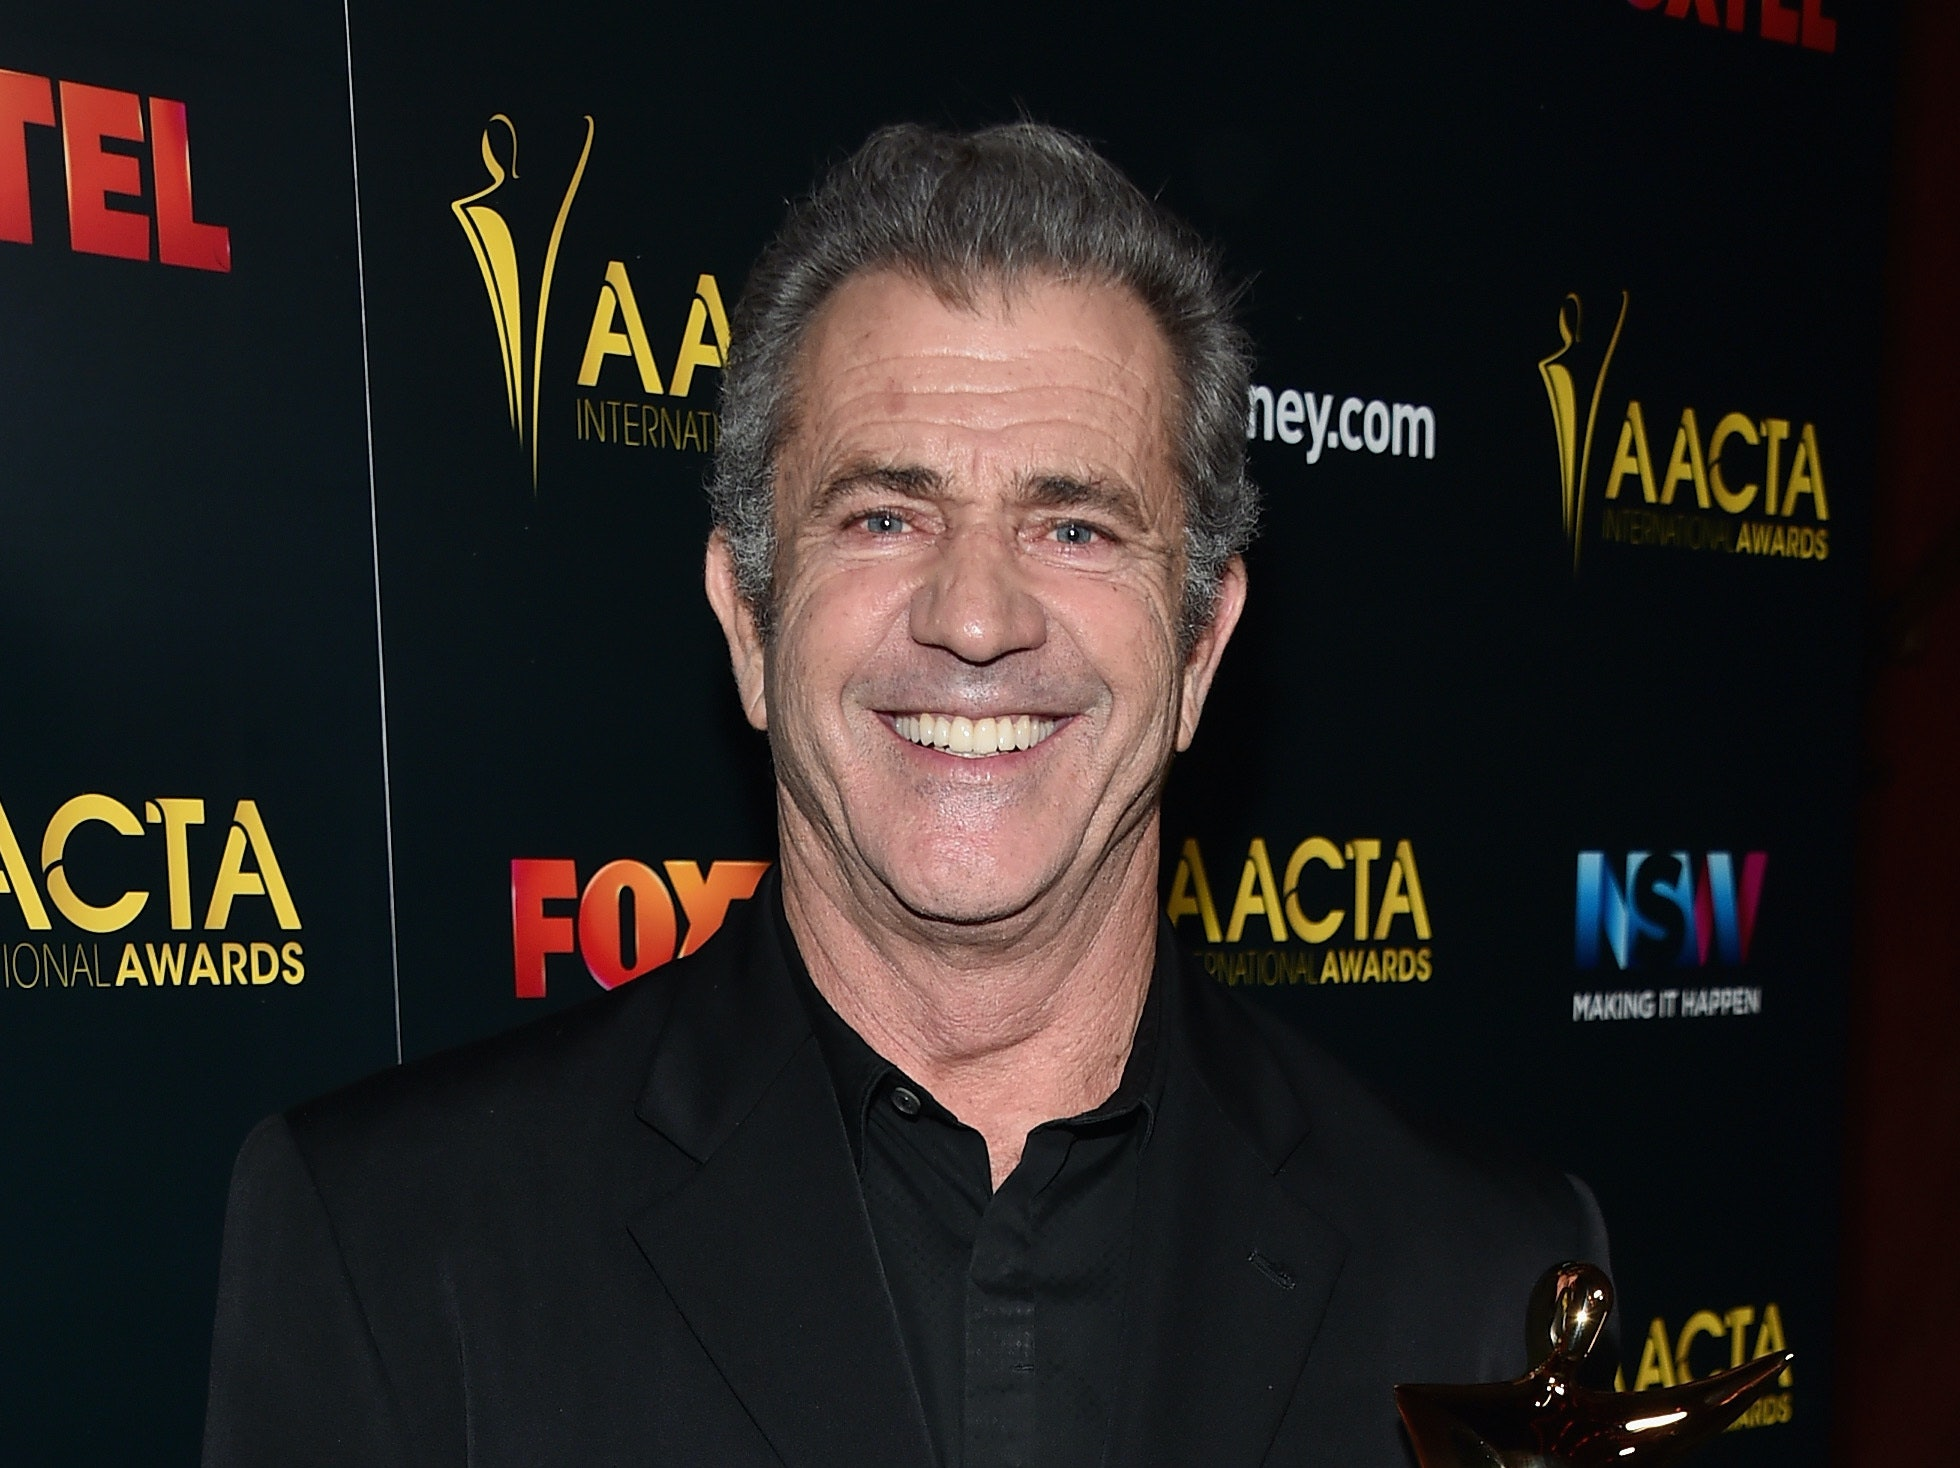 Why Did Hollywood Let Mel Gibson Off the Hook?